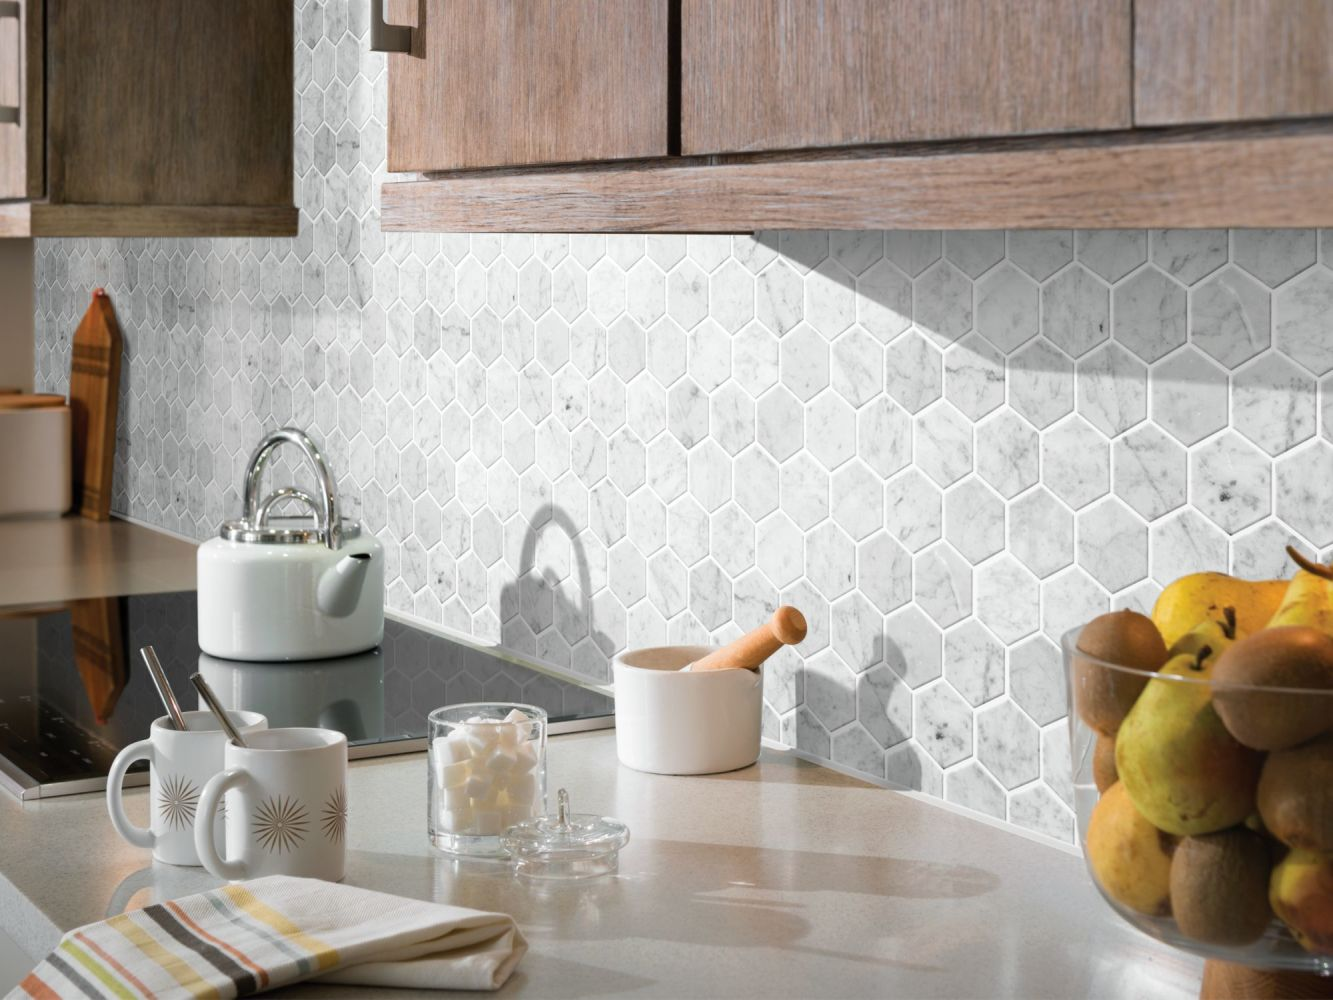 Shaw Floors Ceramic Solutions Chateau Hexagon Mosaic Bianco Carrara 00150_CS56P